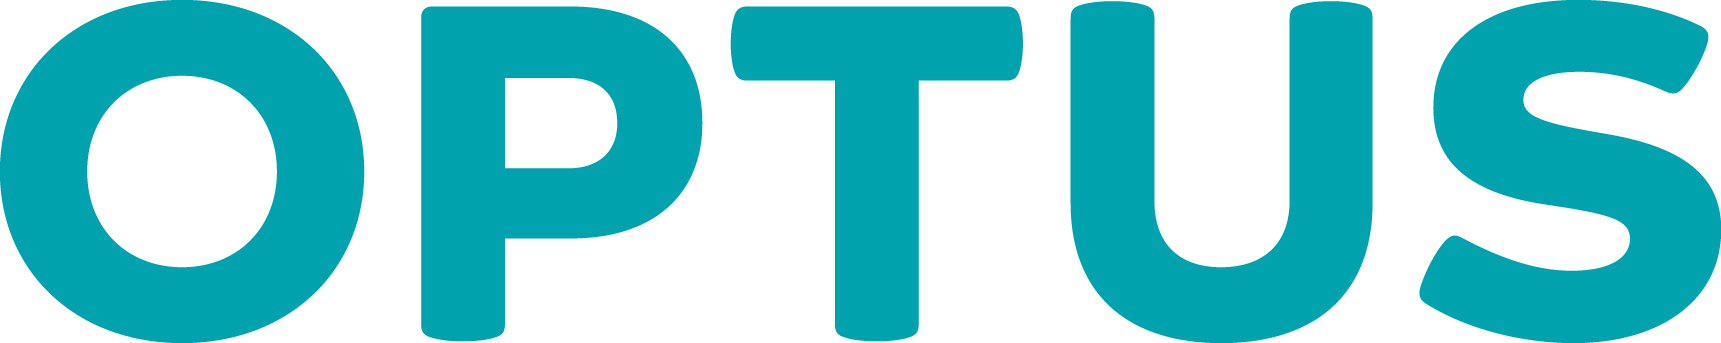 Optus Wholesale Partner